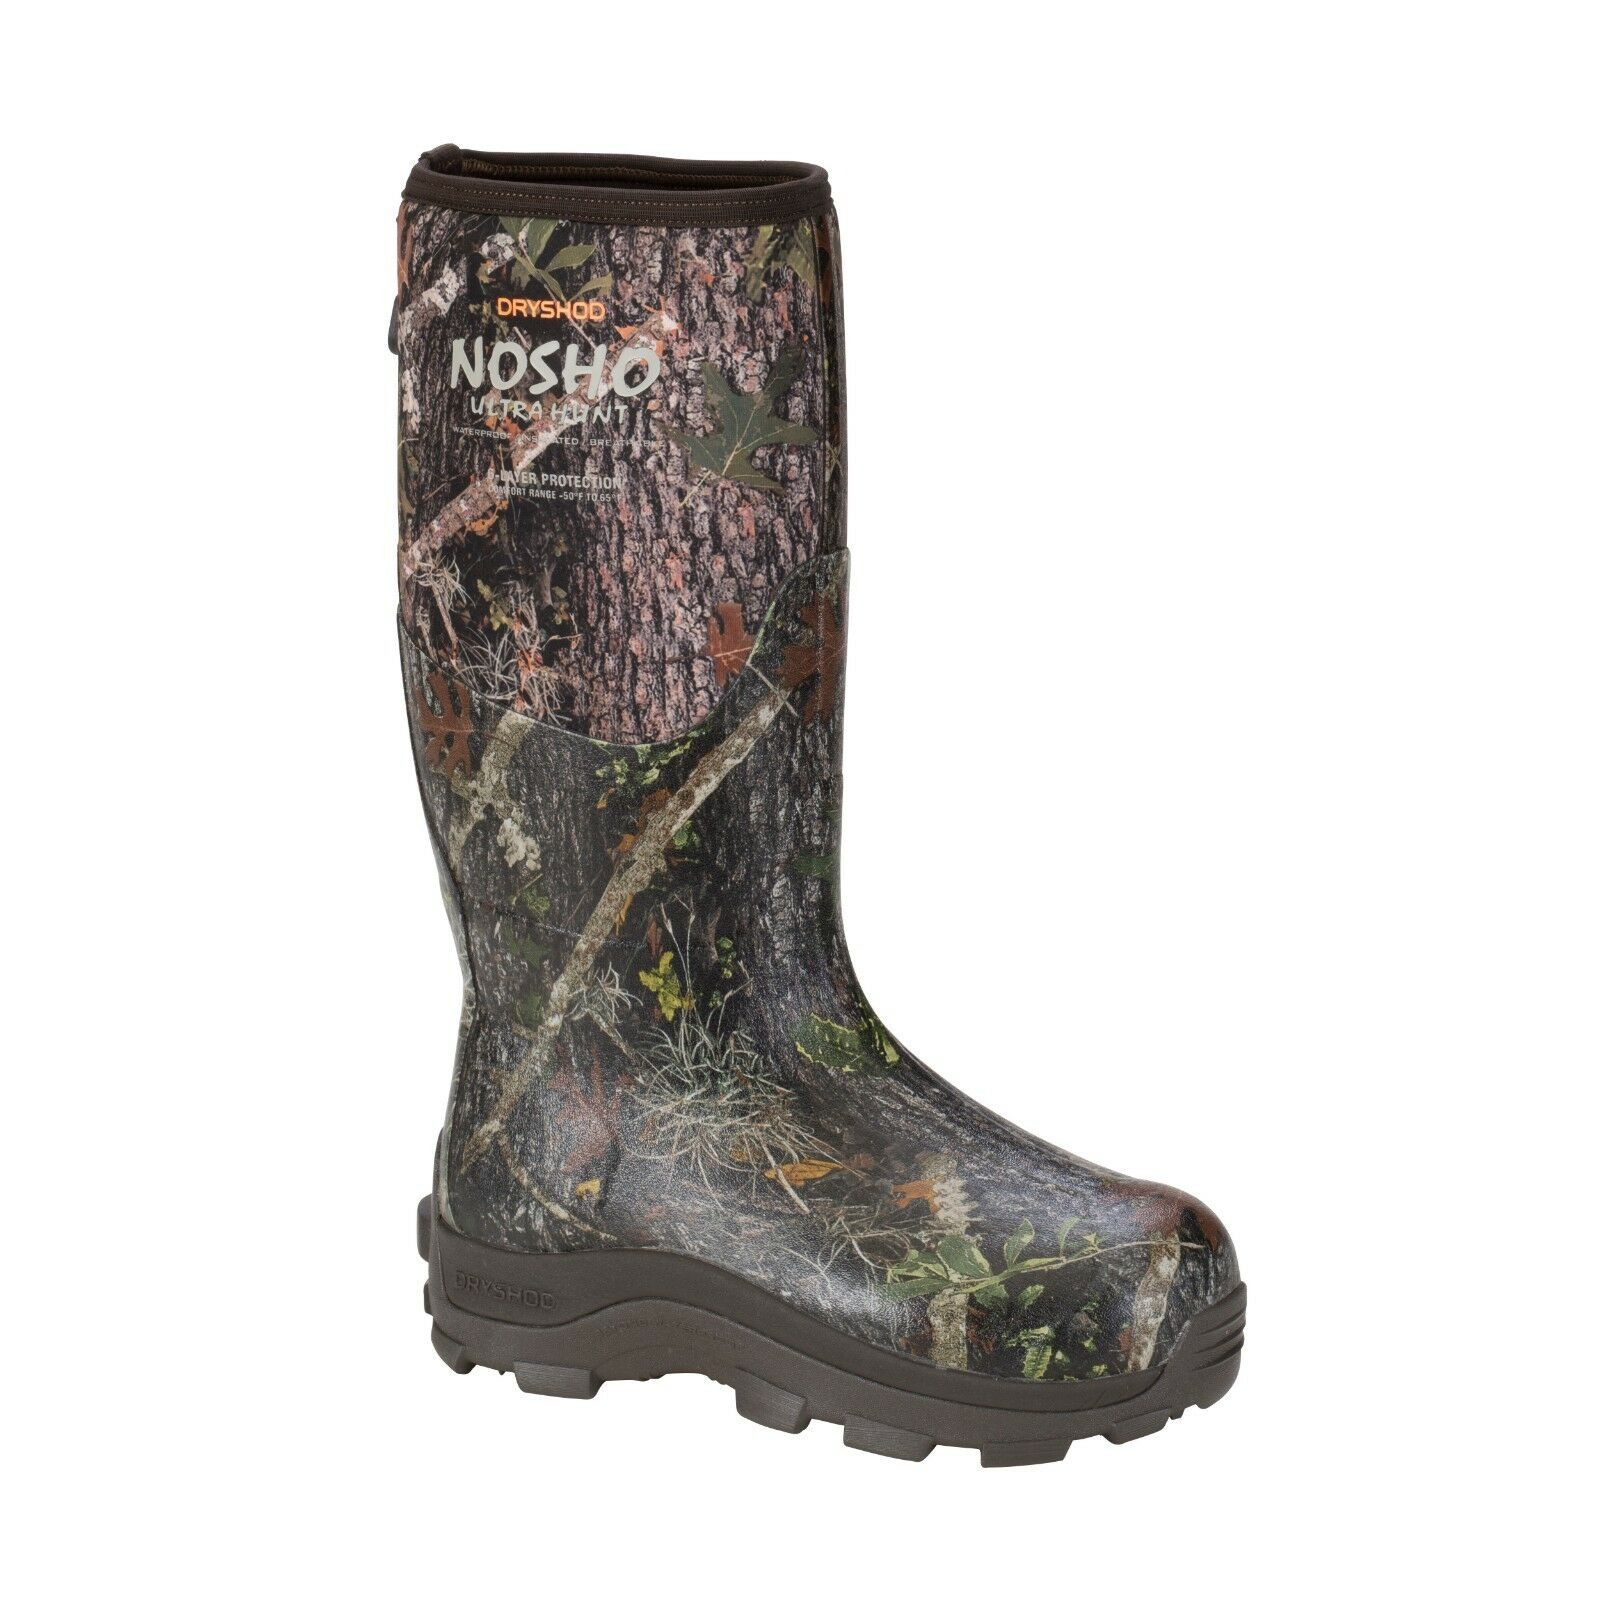 Dryshod NO SHO Ultra Hunt Muck Style Camo Hunting - Best Hunting Boots